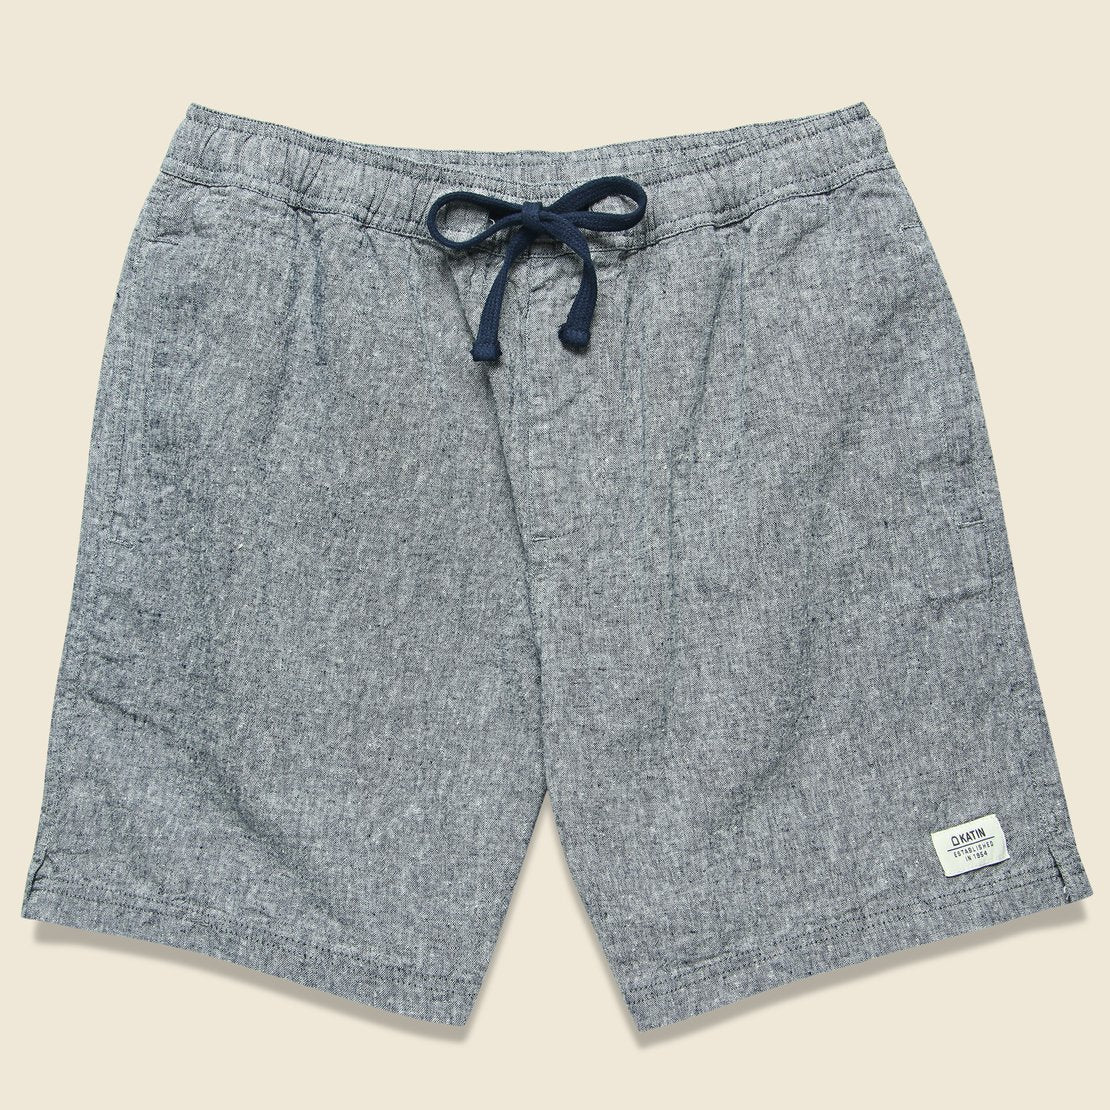 Katin Isaiah Local Short - Navy